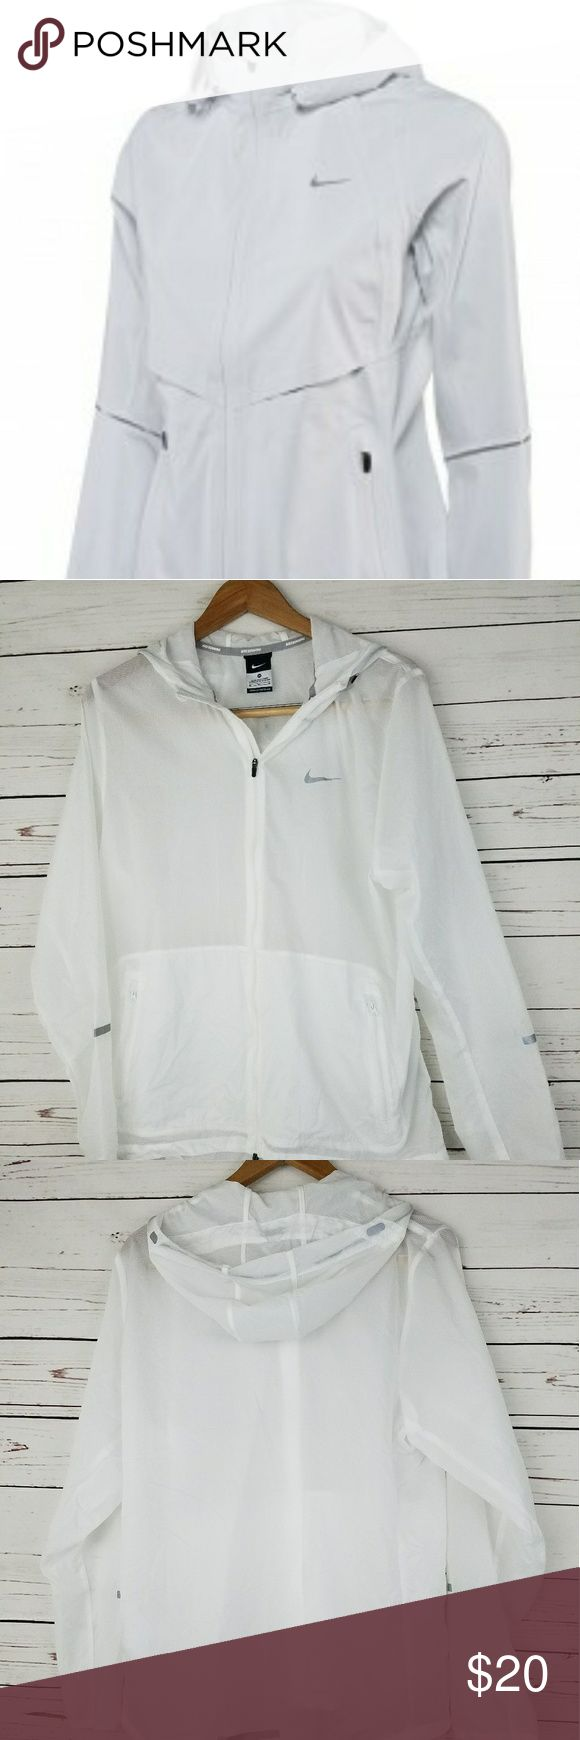 "Nike Running Jacket Gently Pre-loved . Very good condition no holes, tears, rips, or stains.  Measurements: Underarm to underarm - 21"" Length- 29.5"" No Trades- Smoke free home. Bundles are accepted for big discount leave a comment below. Make us an offer.  Fast Shipping- Will ship same day or next day depending on the time item was purchased.  Thank you for visiting our closet hope to see you again soon Nike Jackets & Coats"